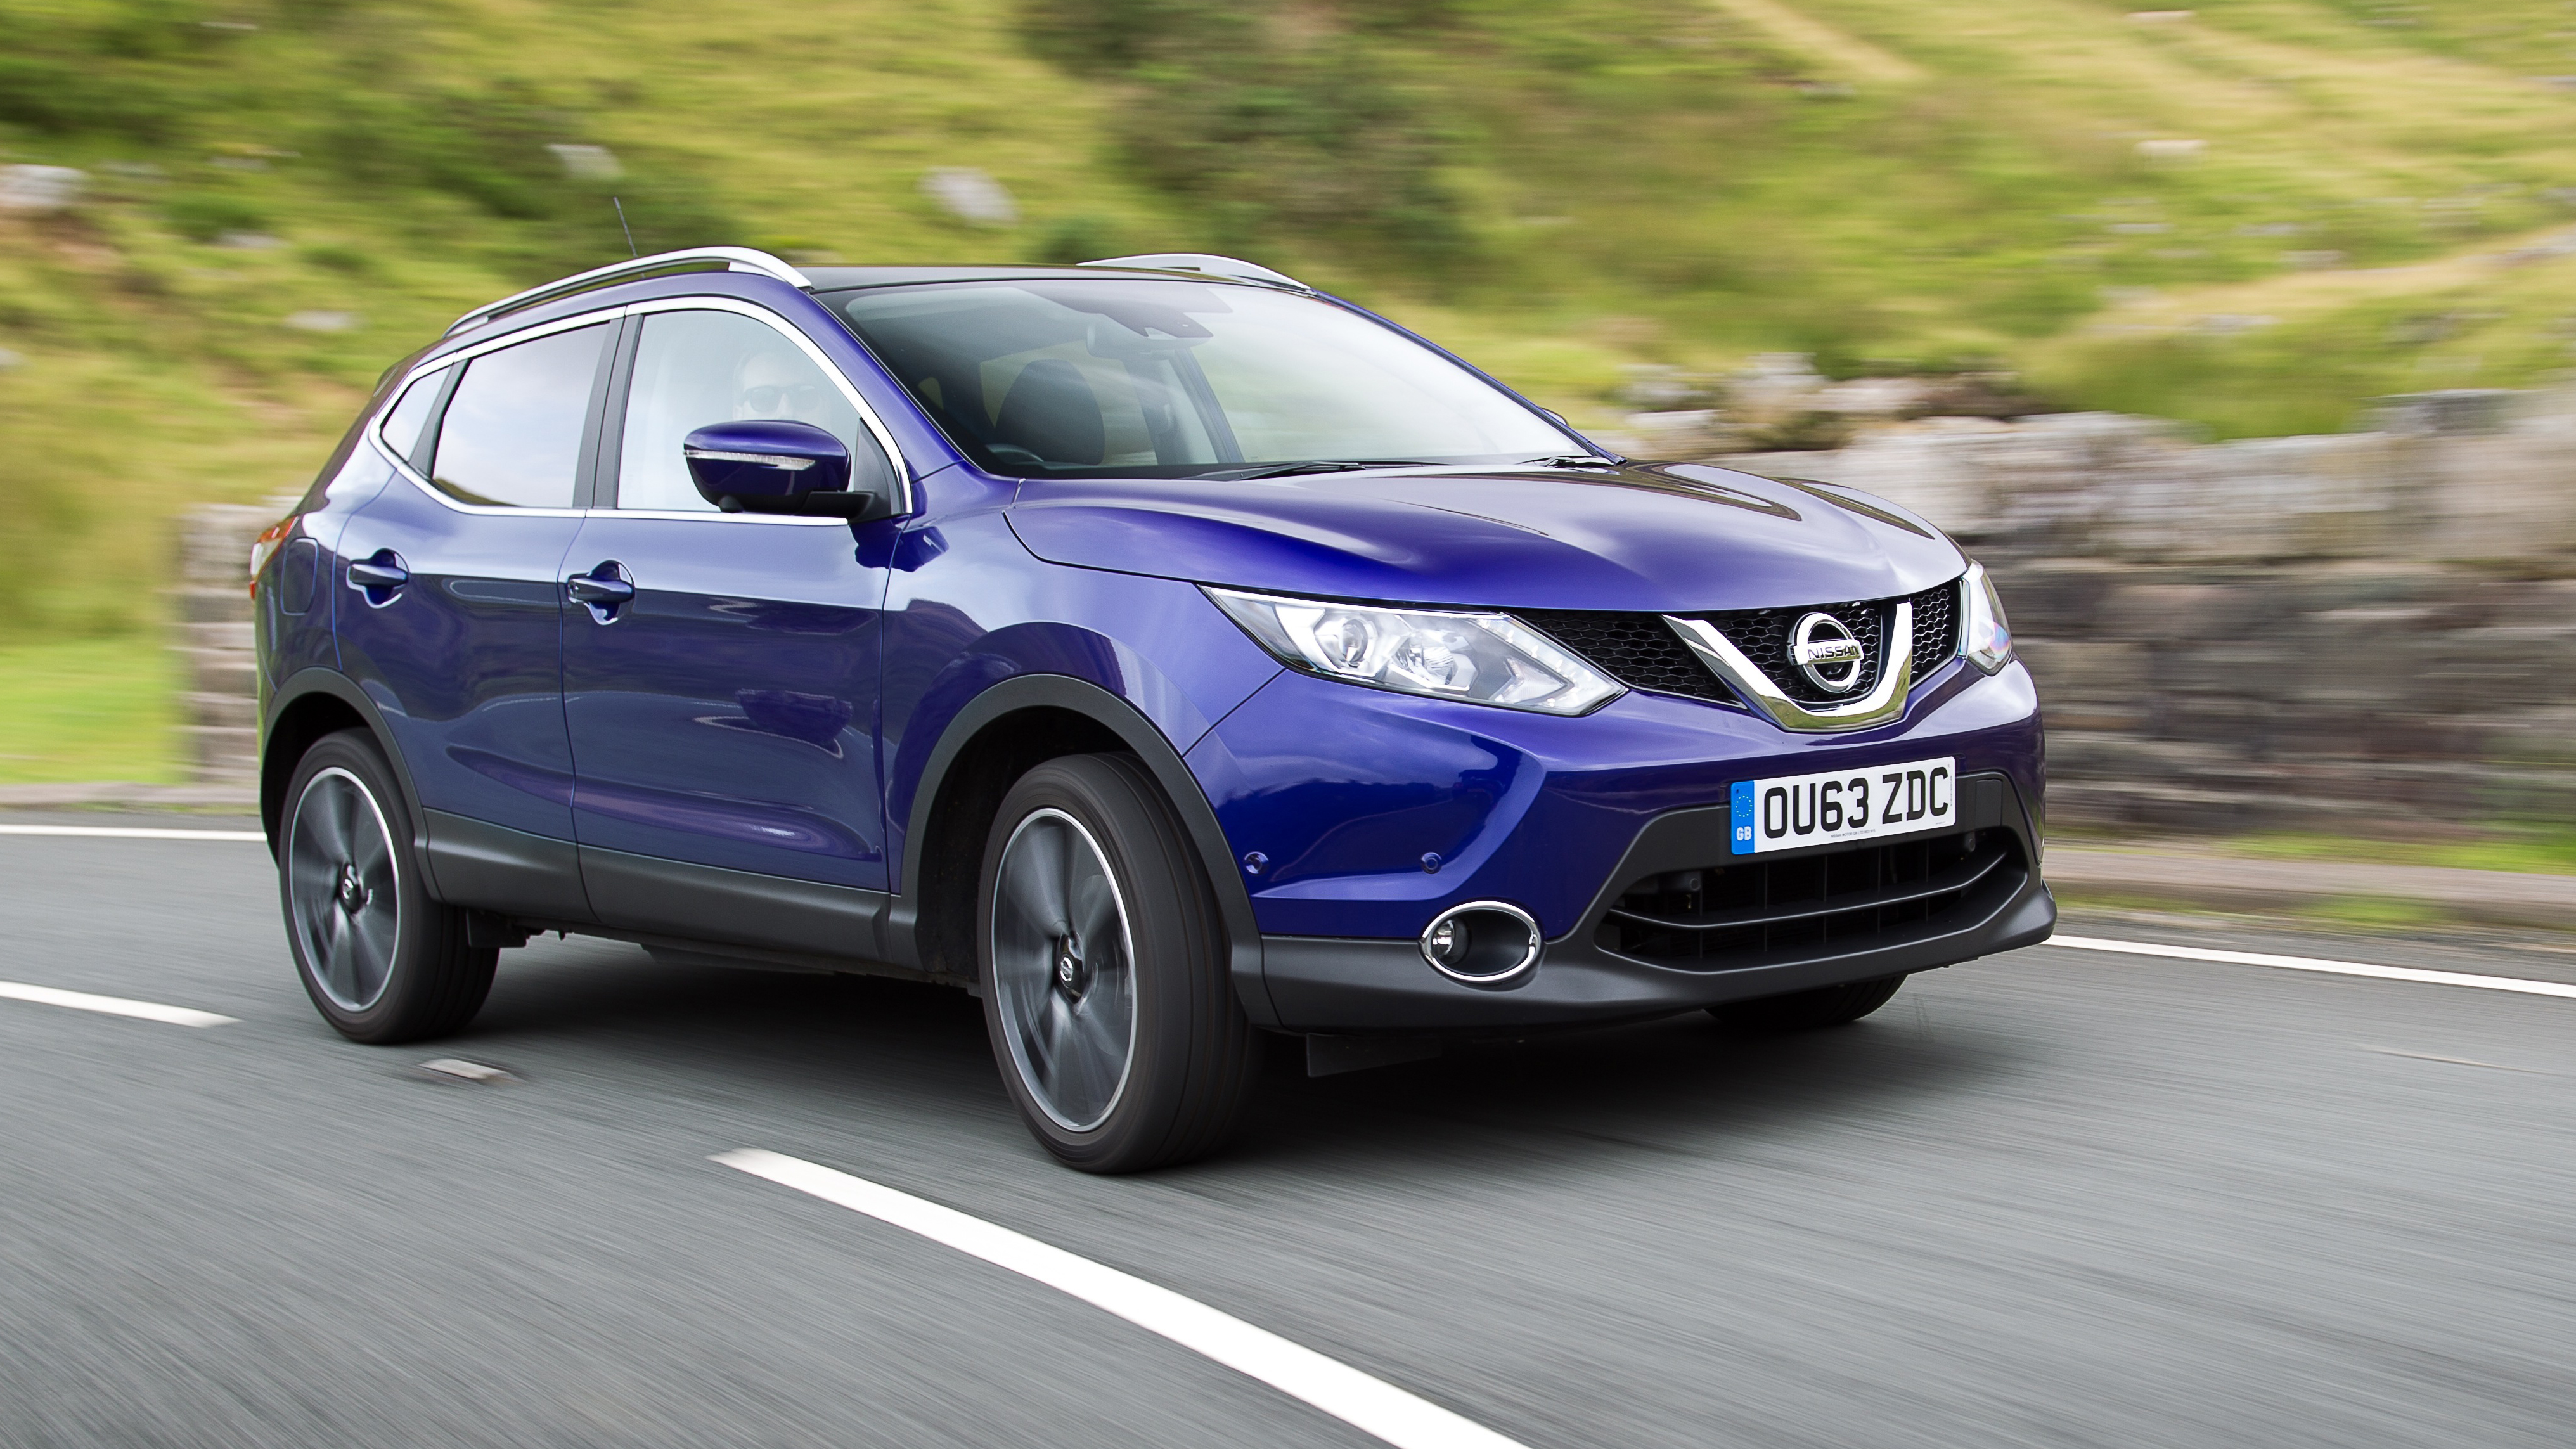 2015 nissan qashqai dimensions turning circle best used cars for under £10 000 from cars for sale under pounds